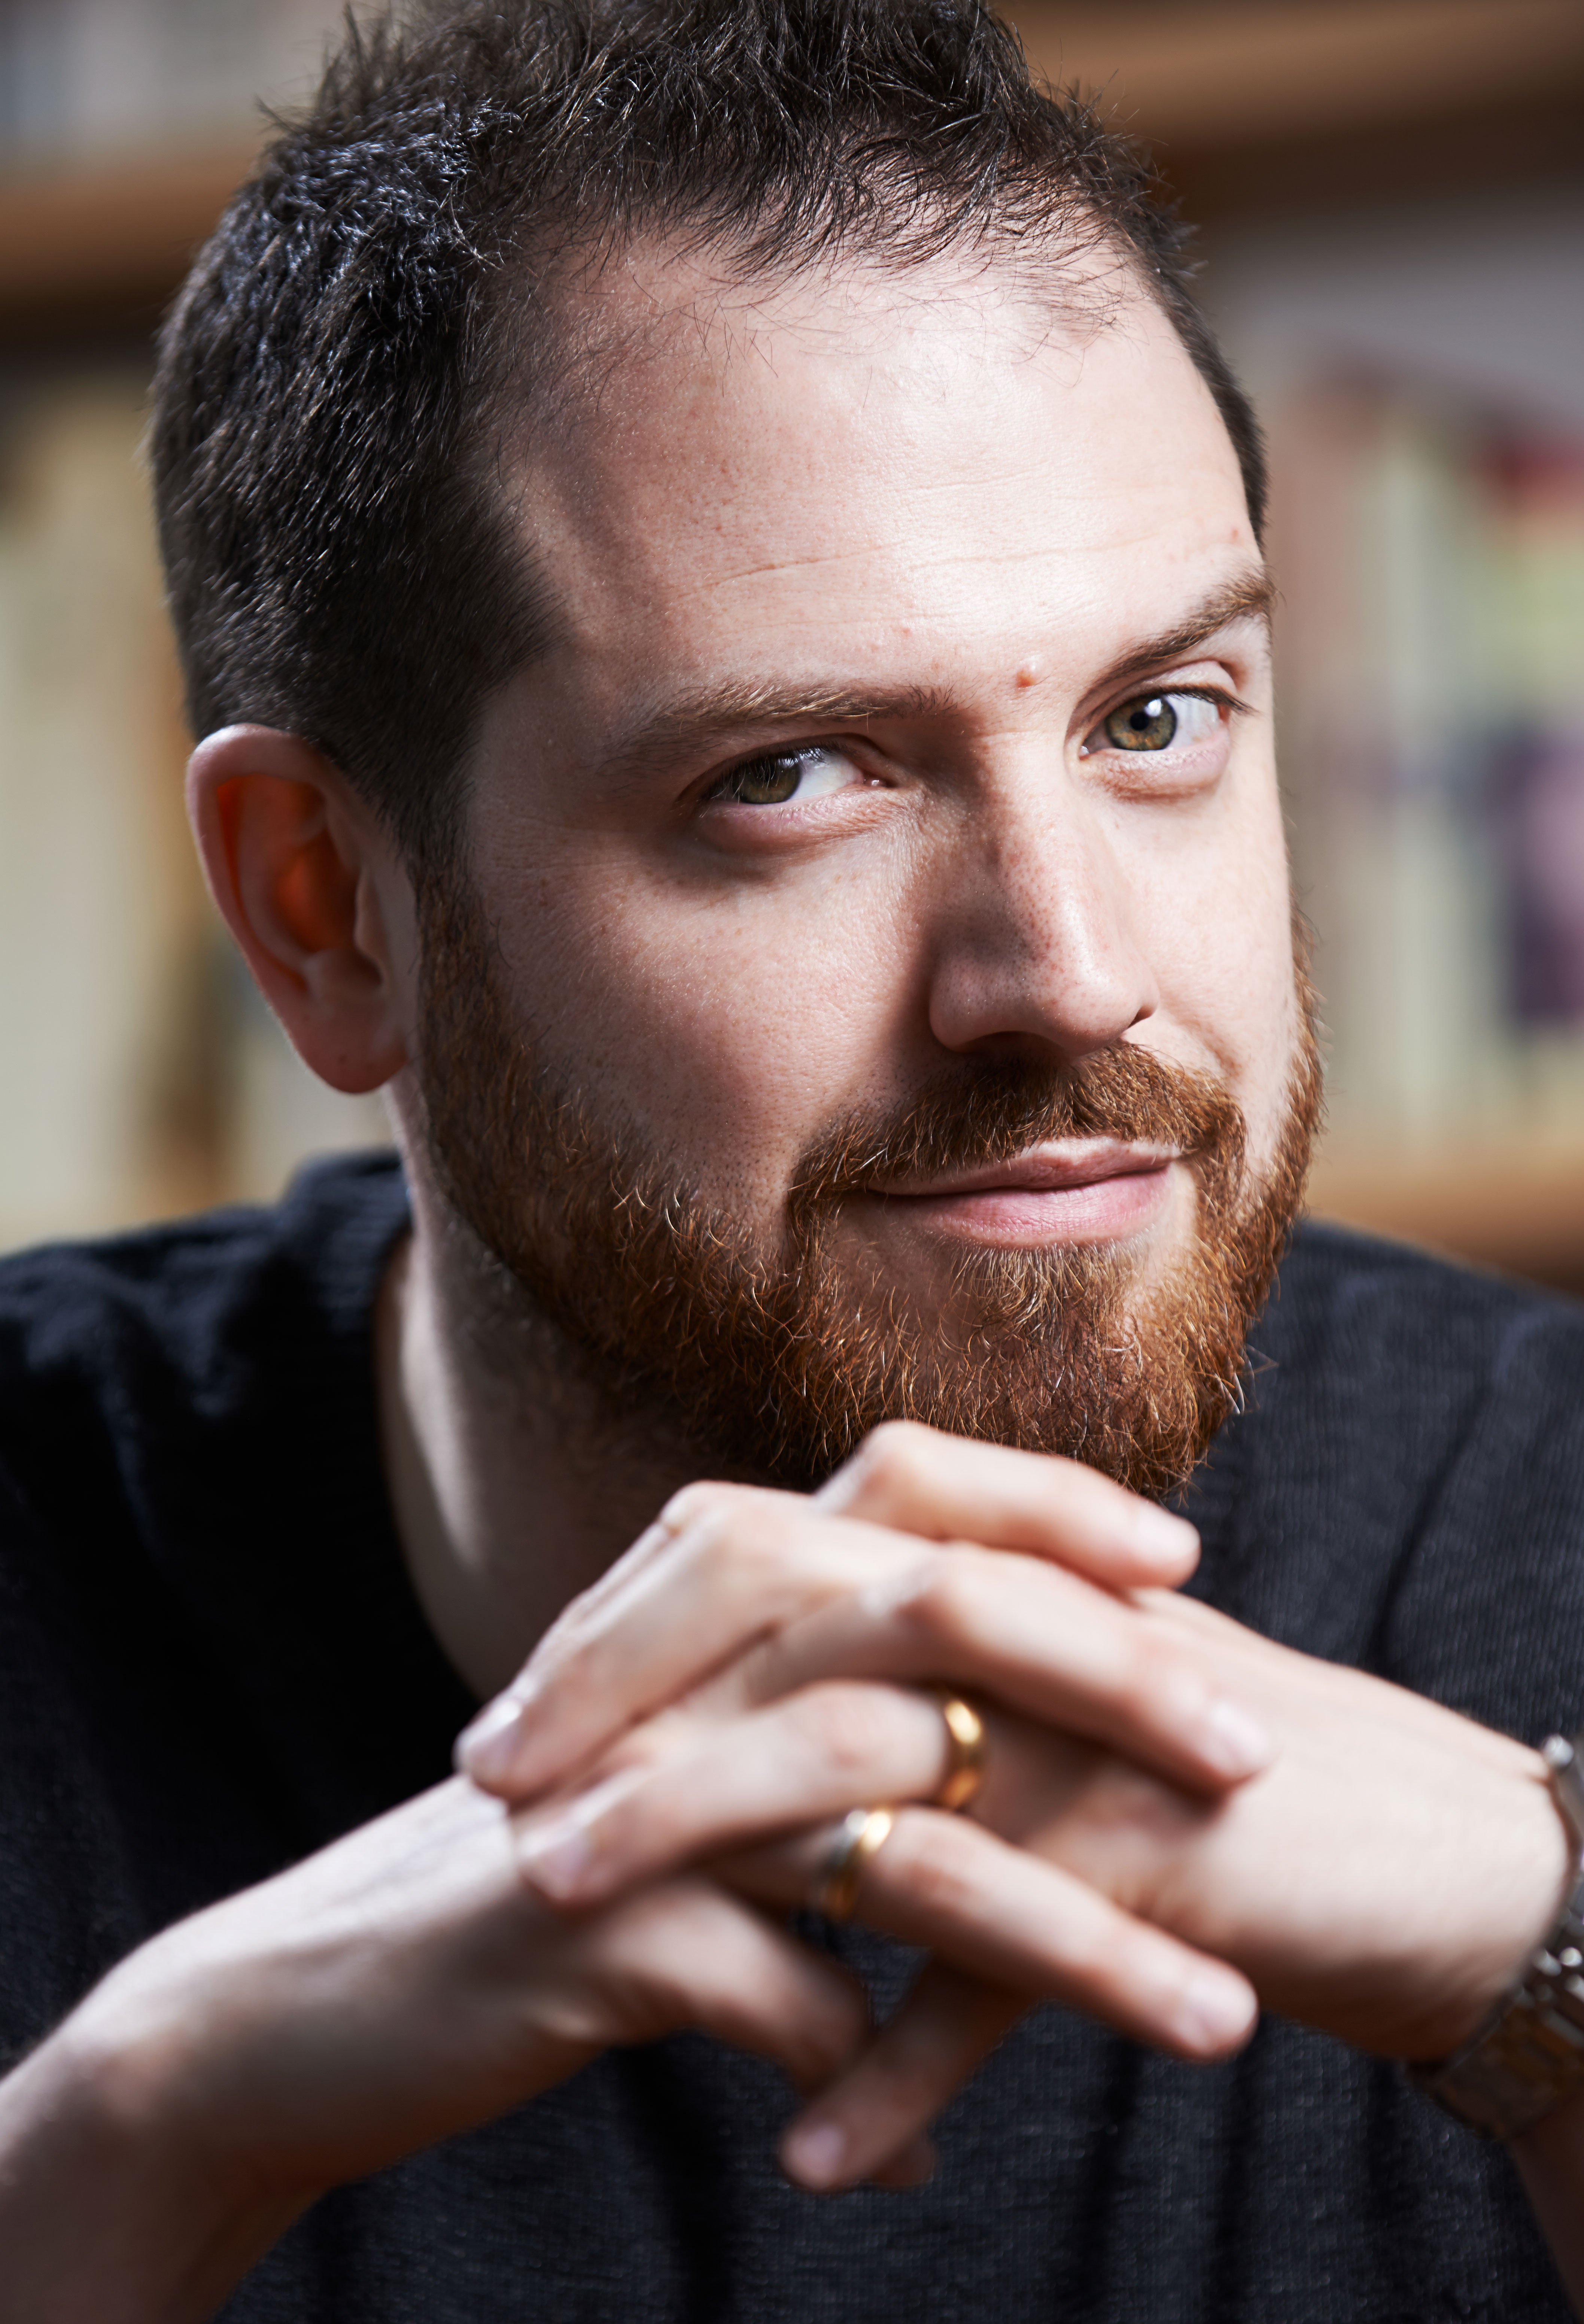 Joe Abercrombie, author of The FIrst Law series